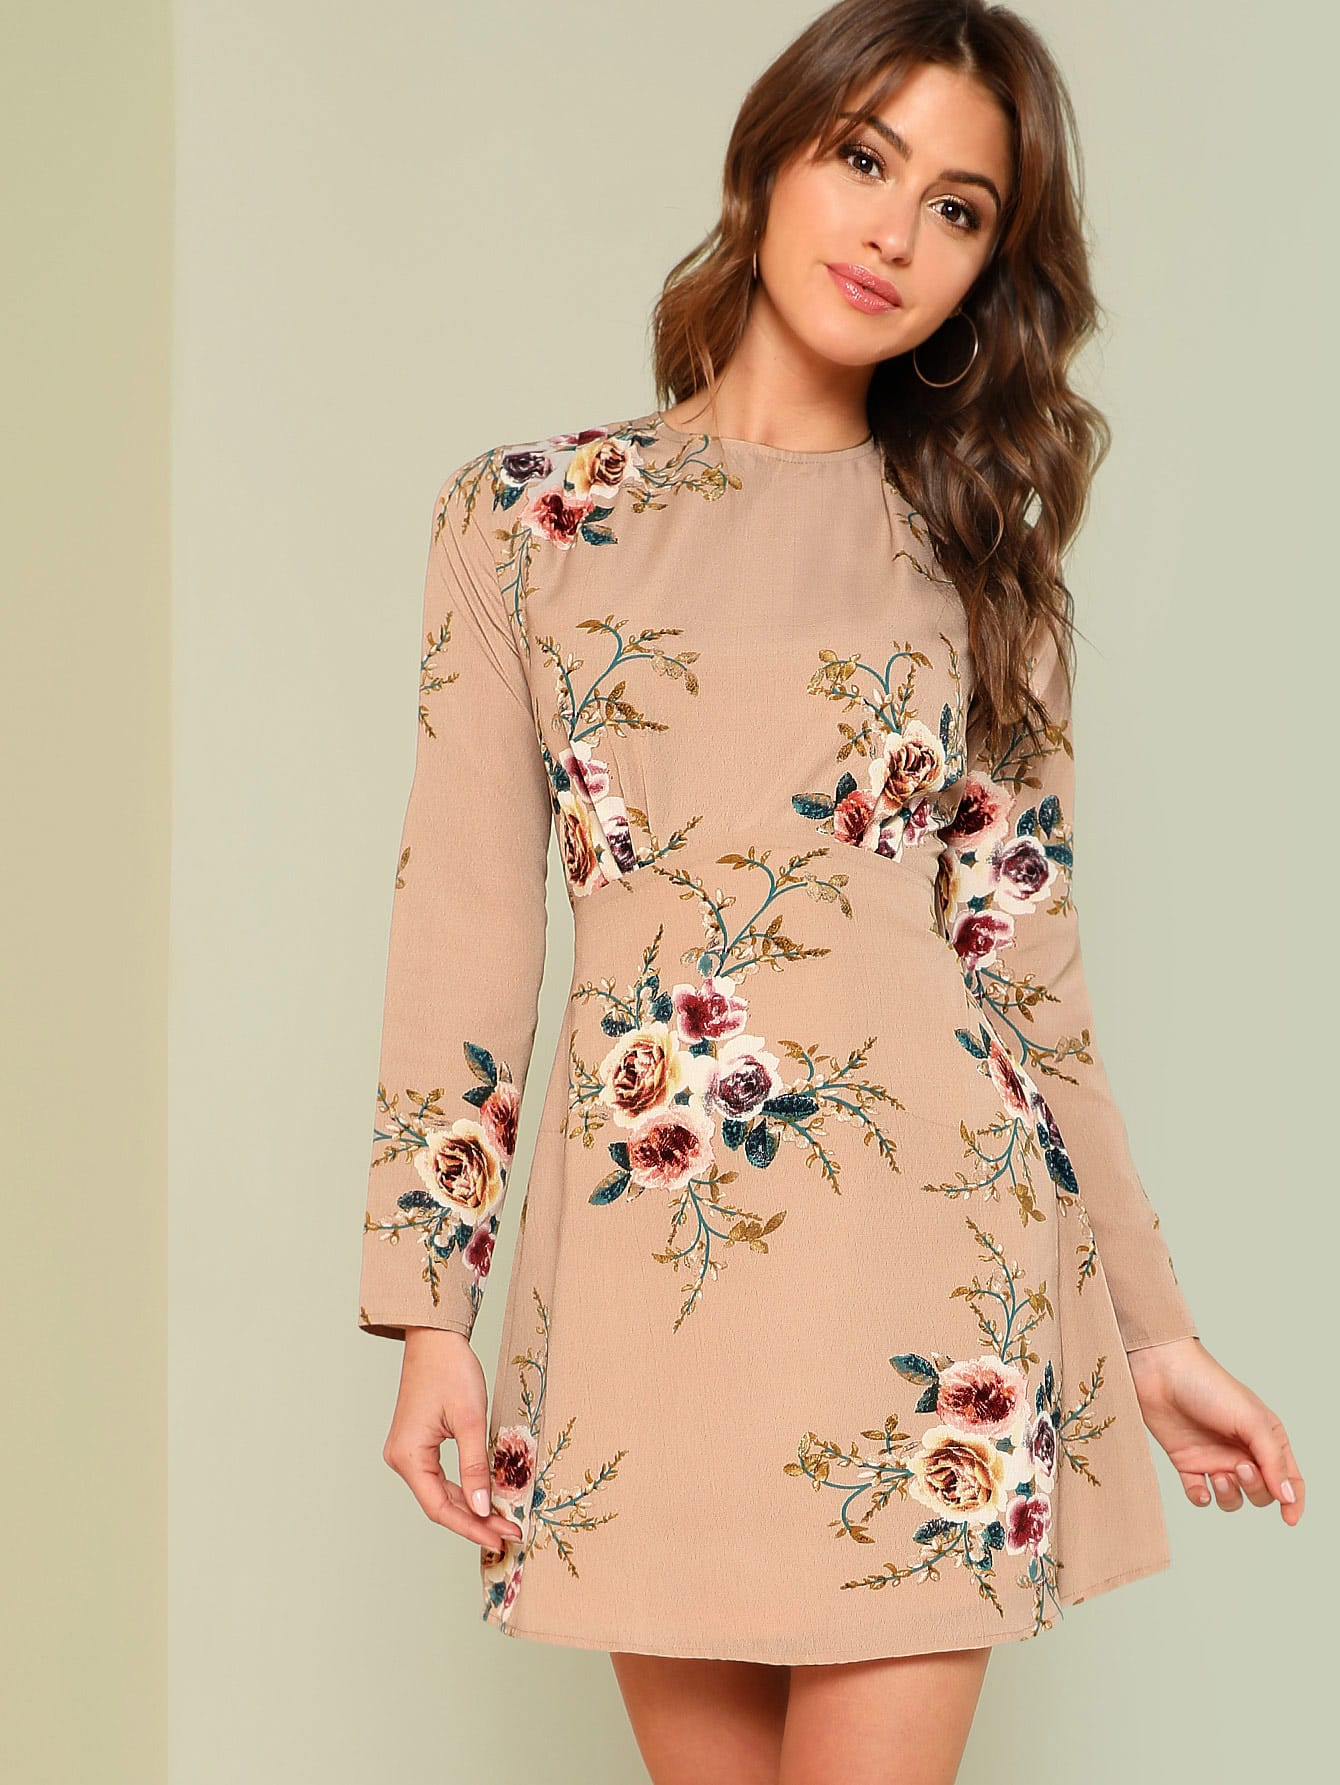 Flower Print Pleated Fit & Flare Dress лампа автомобильная philips 13821b2 бл 2